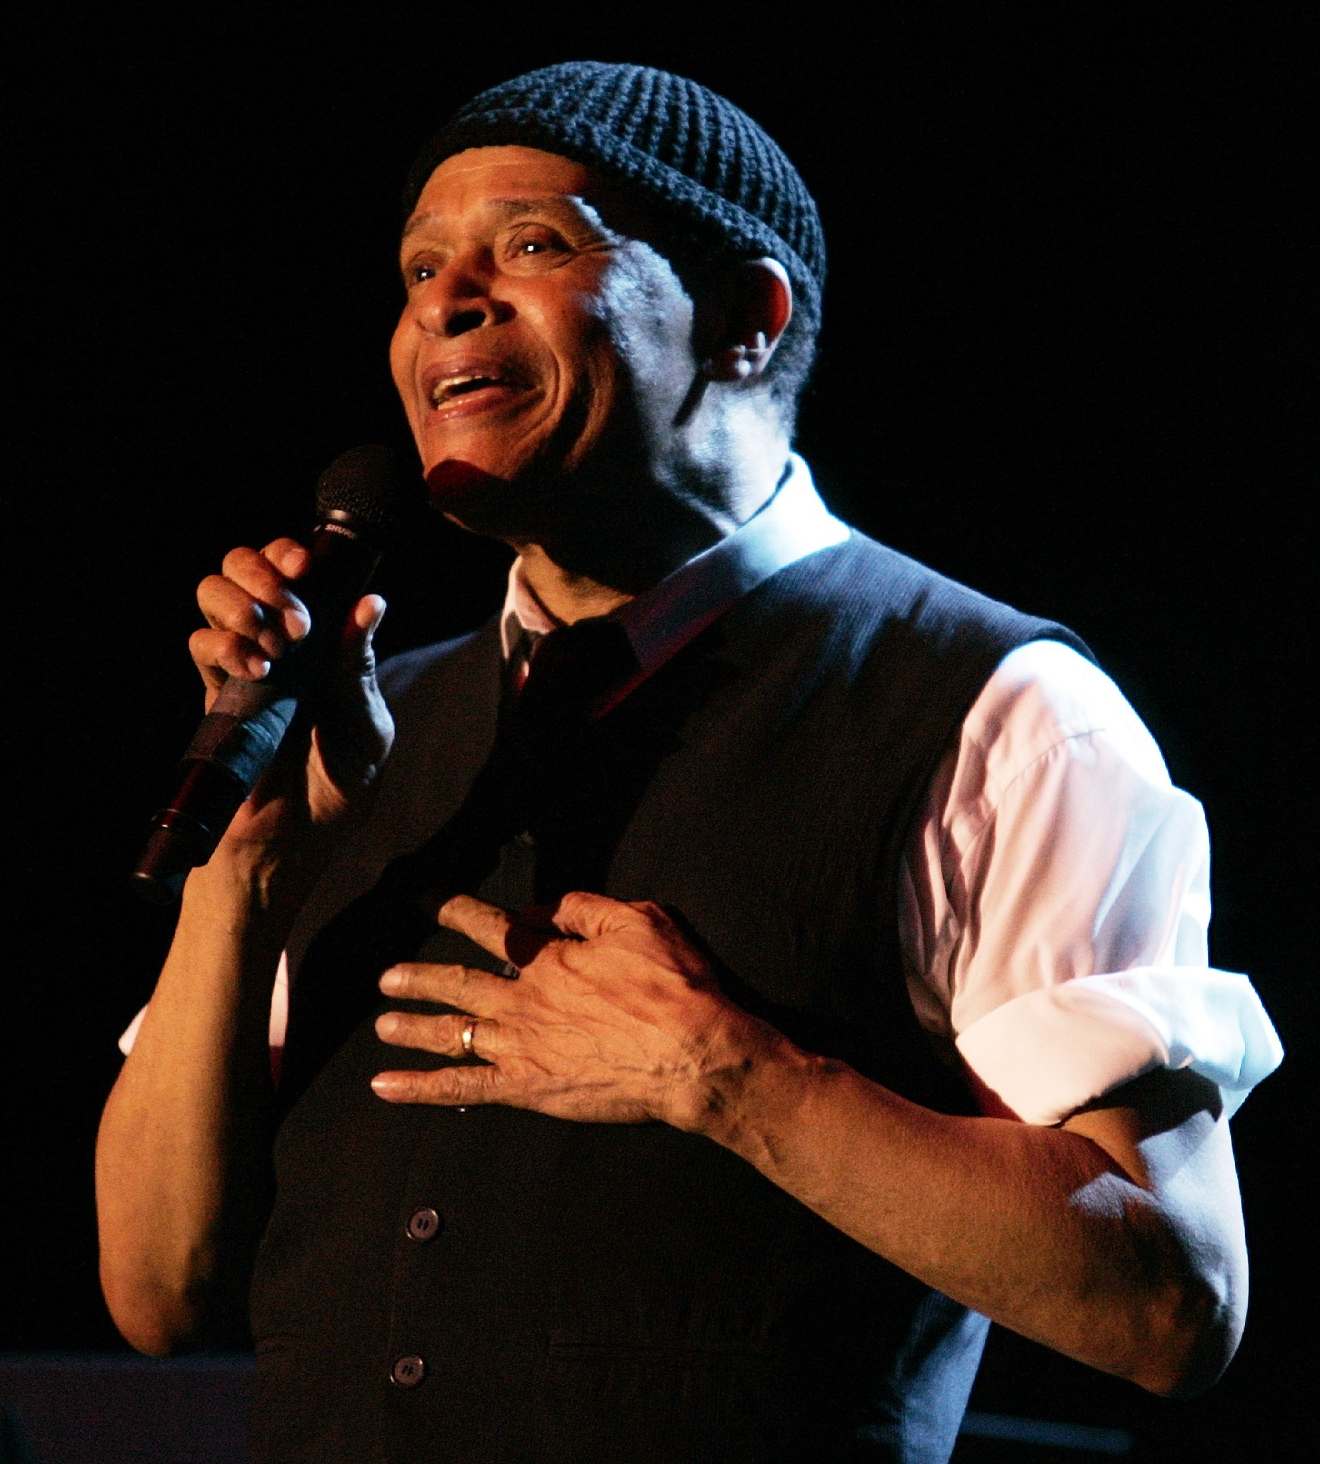 Al Jarreau performs in Ripon College's Wyman Gymnasium Oct. 7, 2006, to raise money for fine arts scholarships. (Photo courtesy Ripon College)